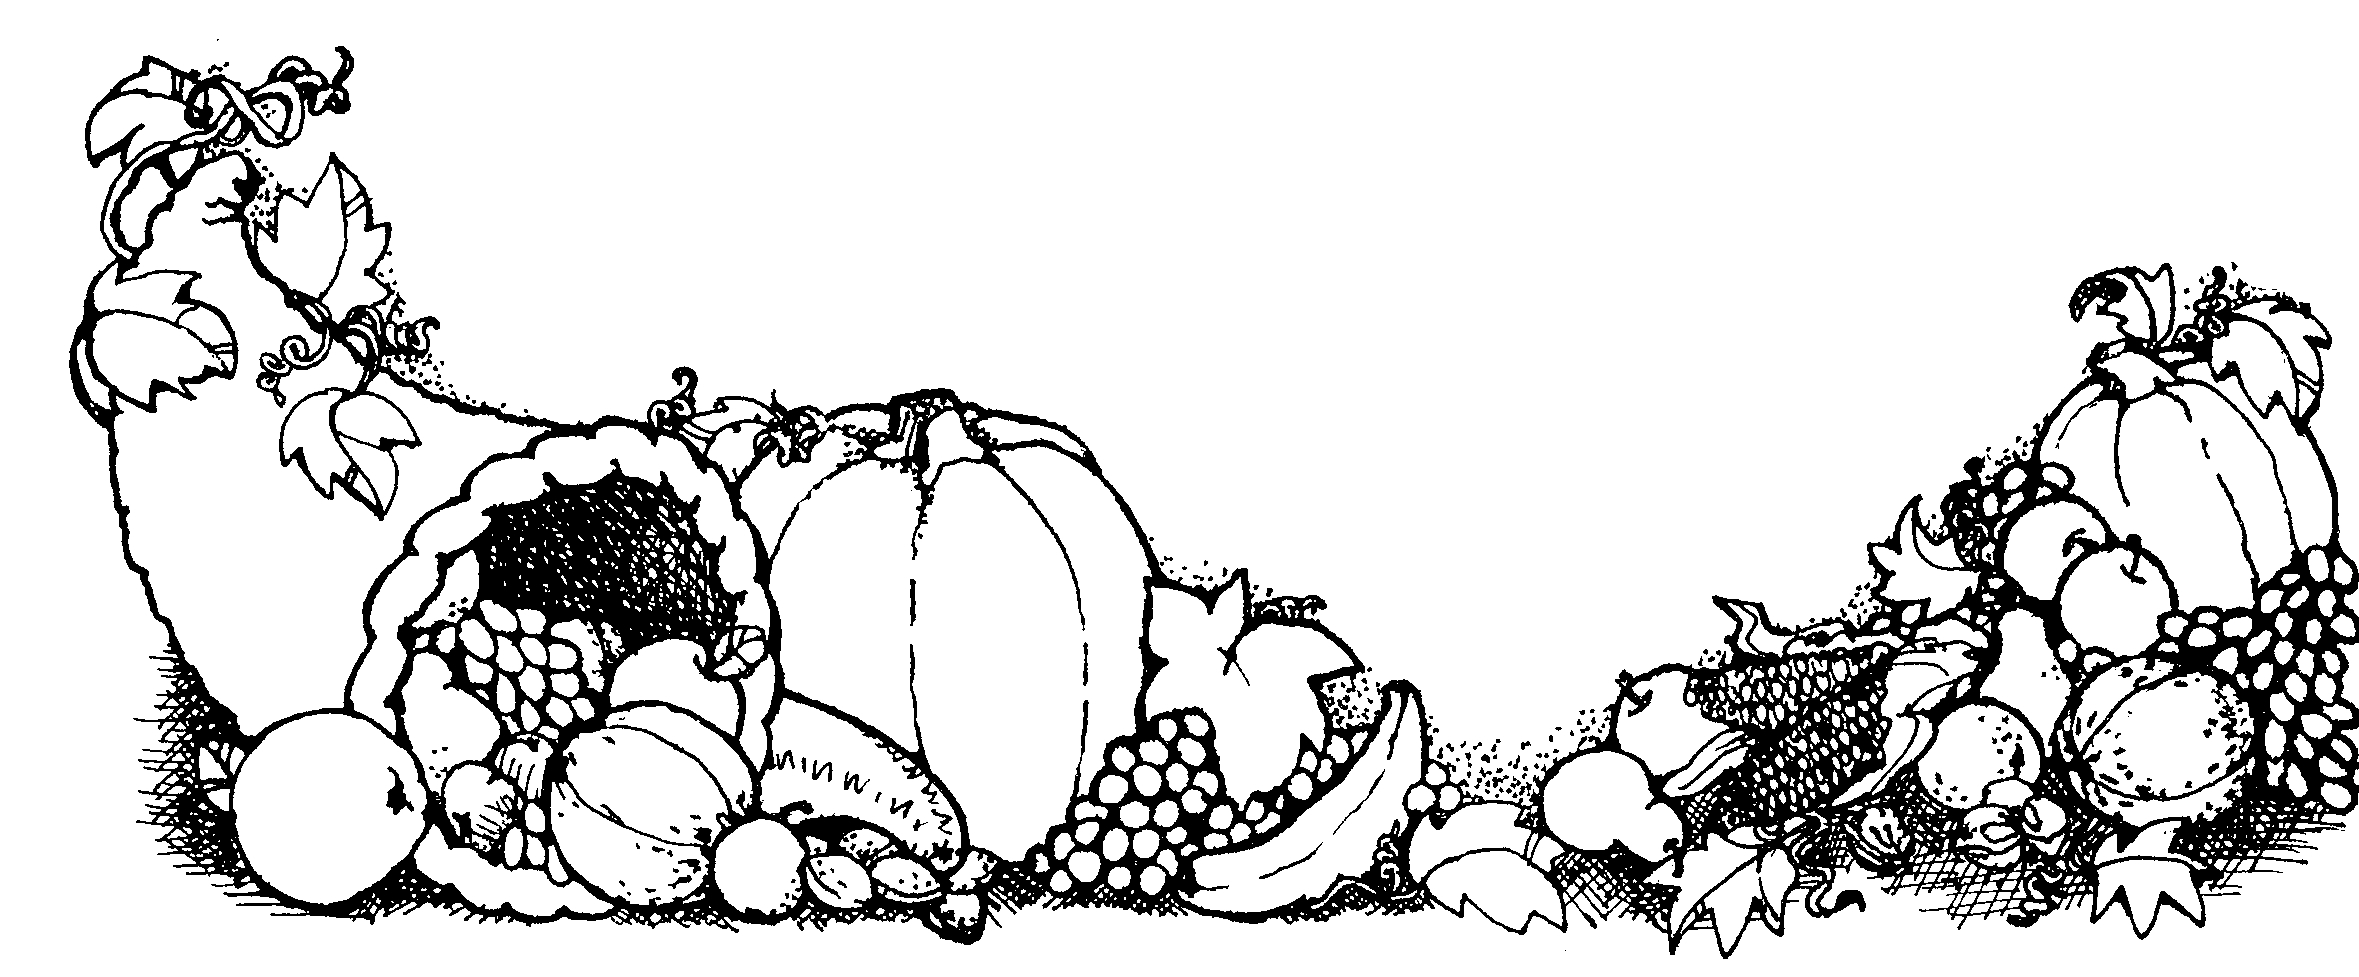 Turkey Black And White Thanksgiving Clipart Black And